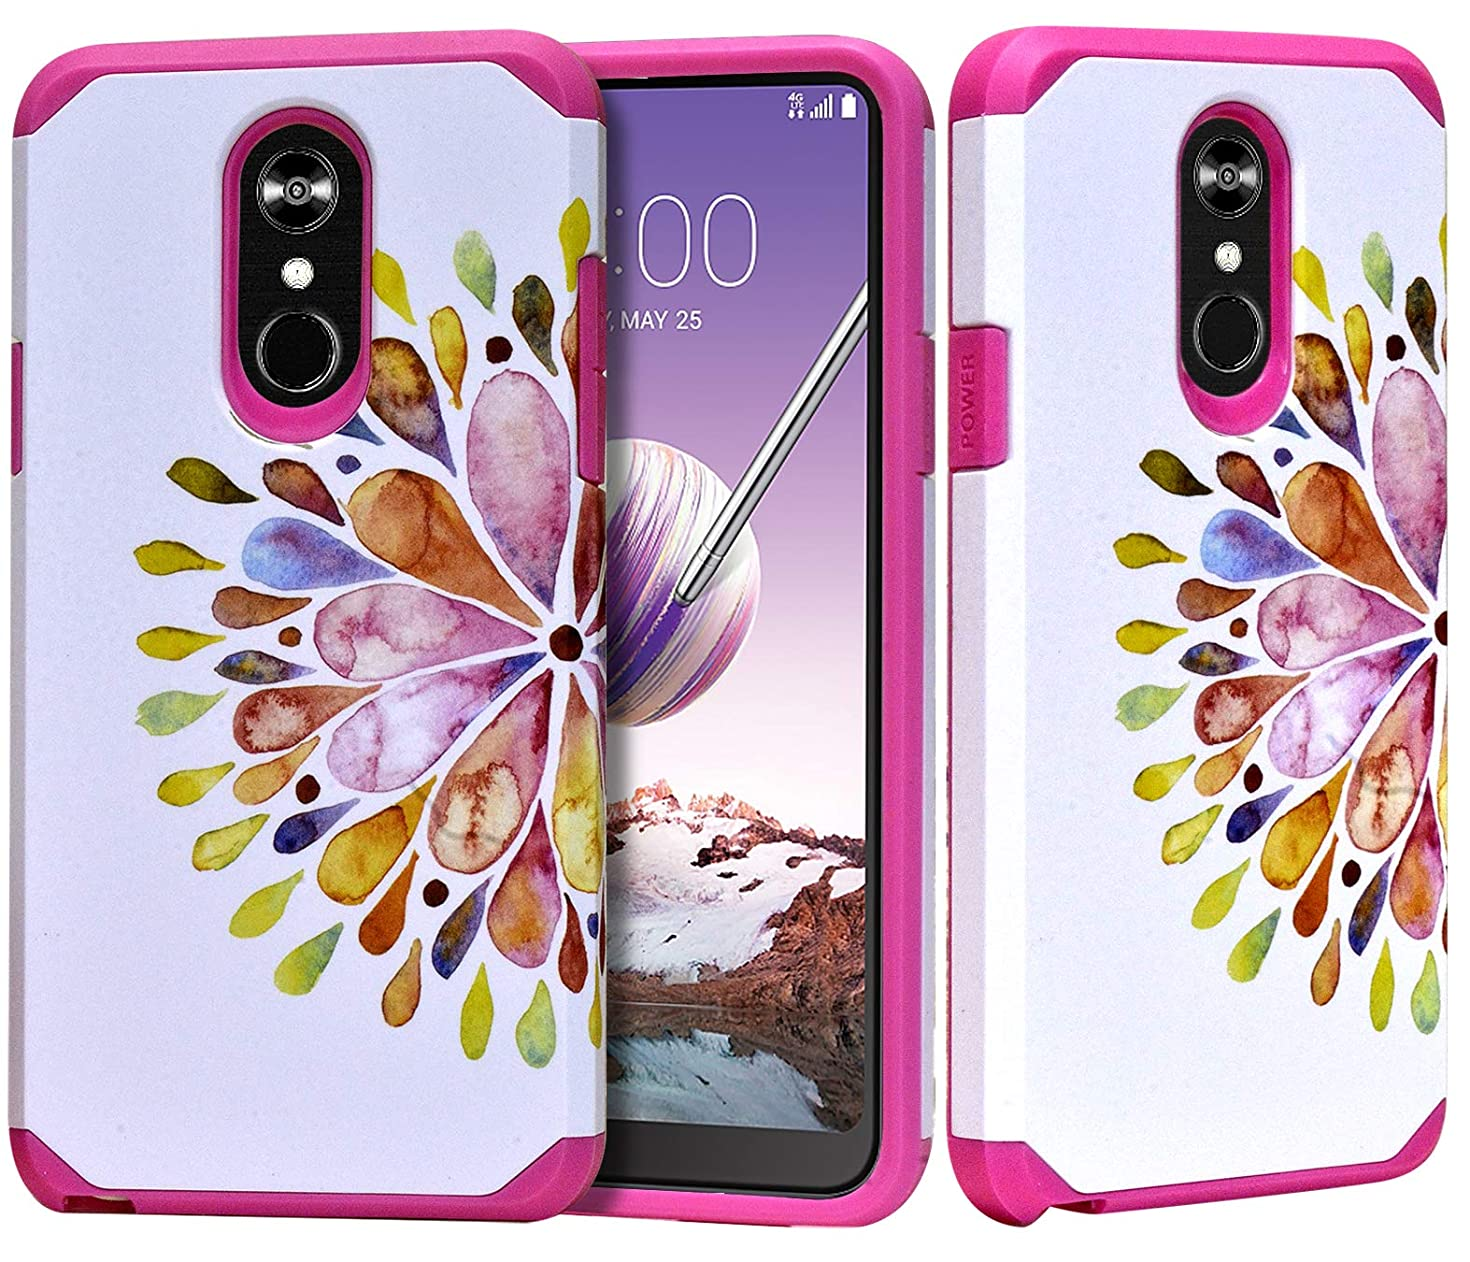 Phonelicious LG STYLO 4 Plus Case LG STYLO 4 Phone Cover Dual Layer Hybrid Slim Fit with Screen Protector Compatible with LMQ710, L713DL (Mandala)